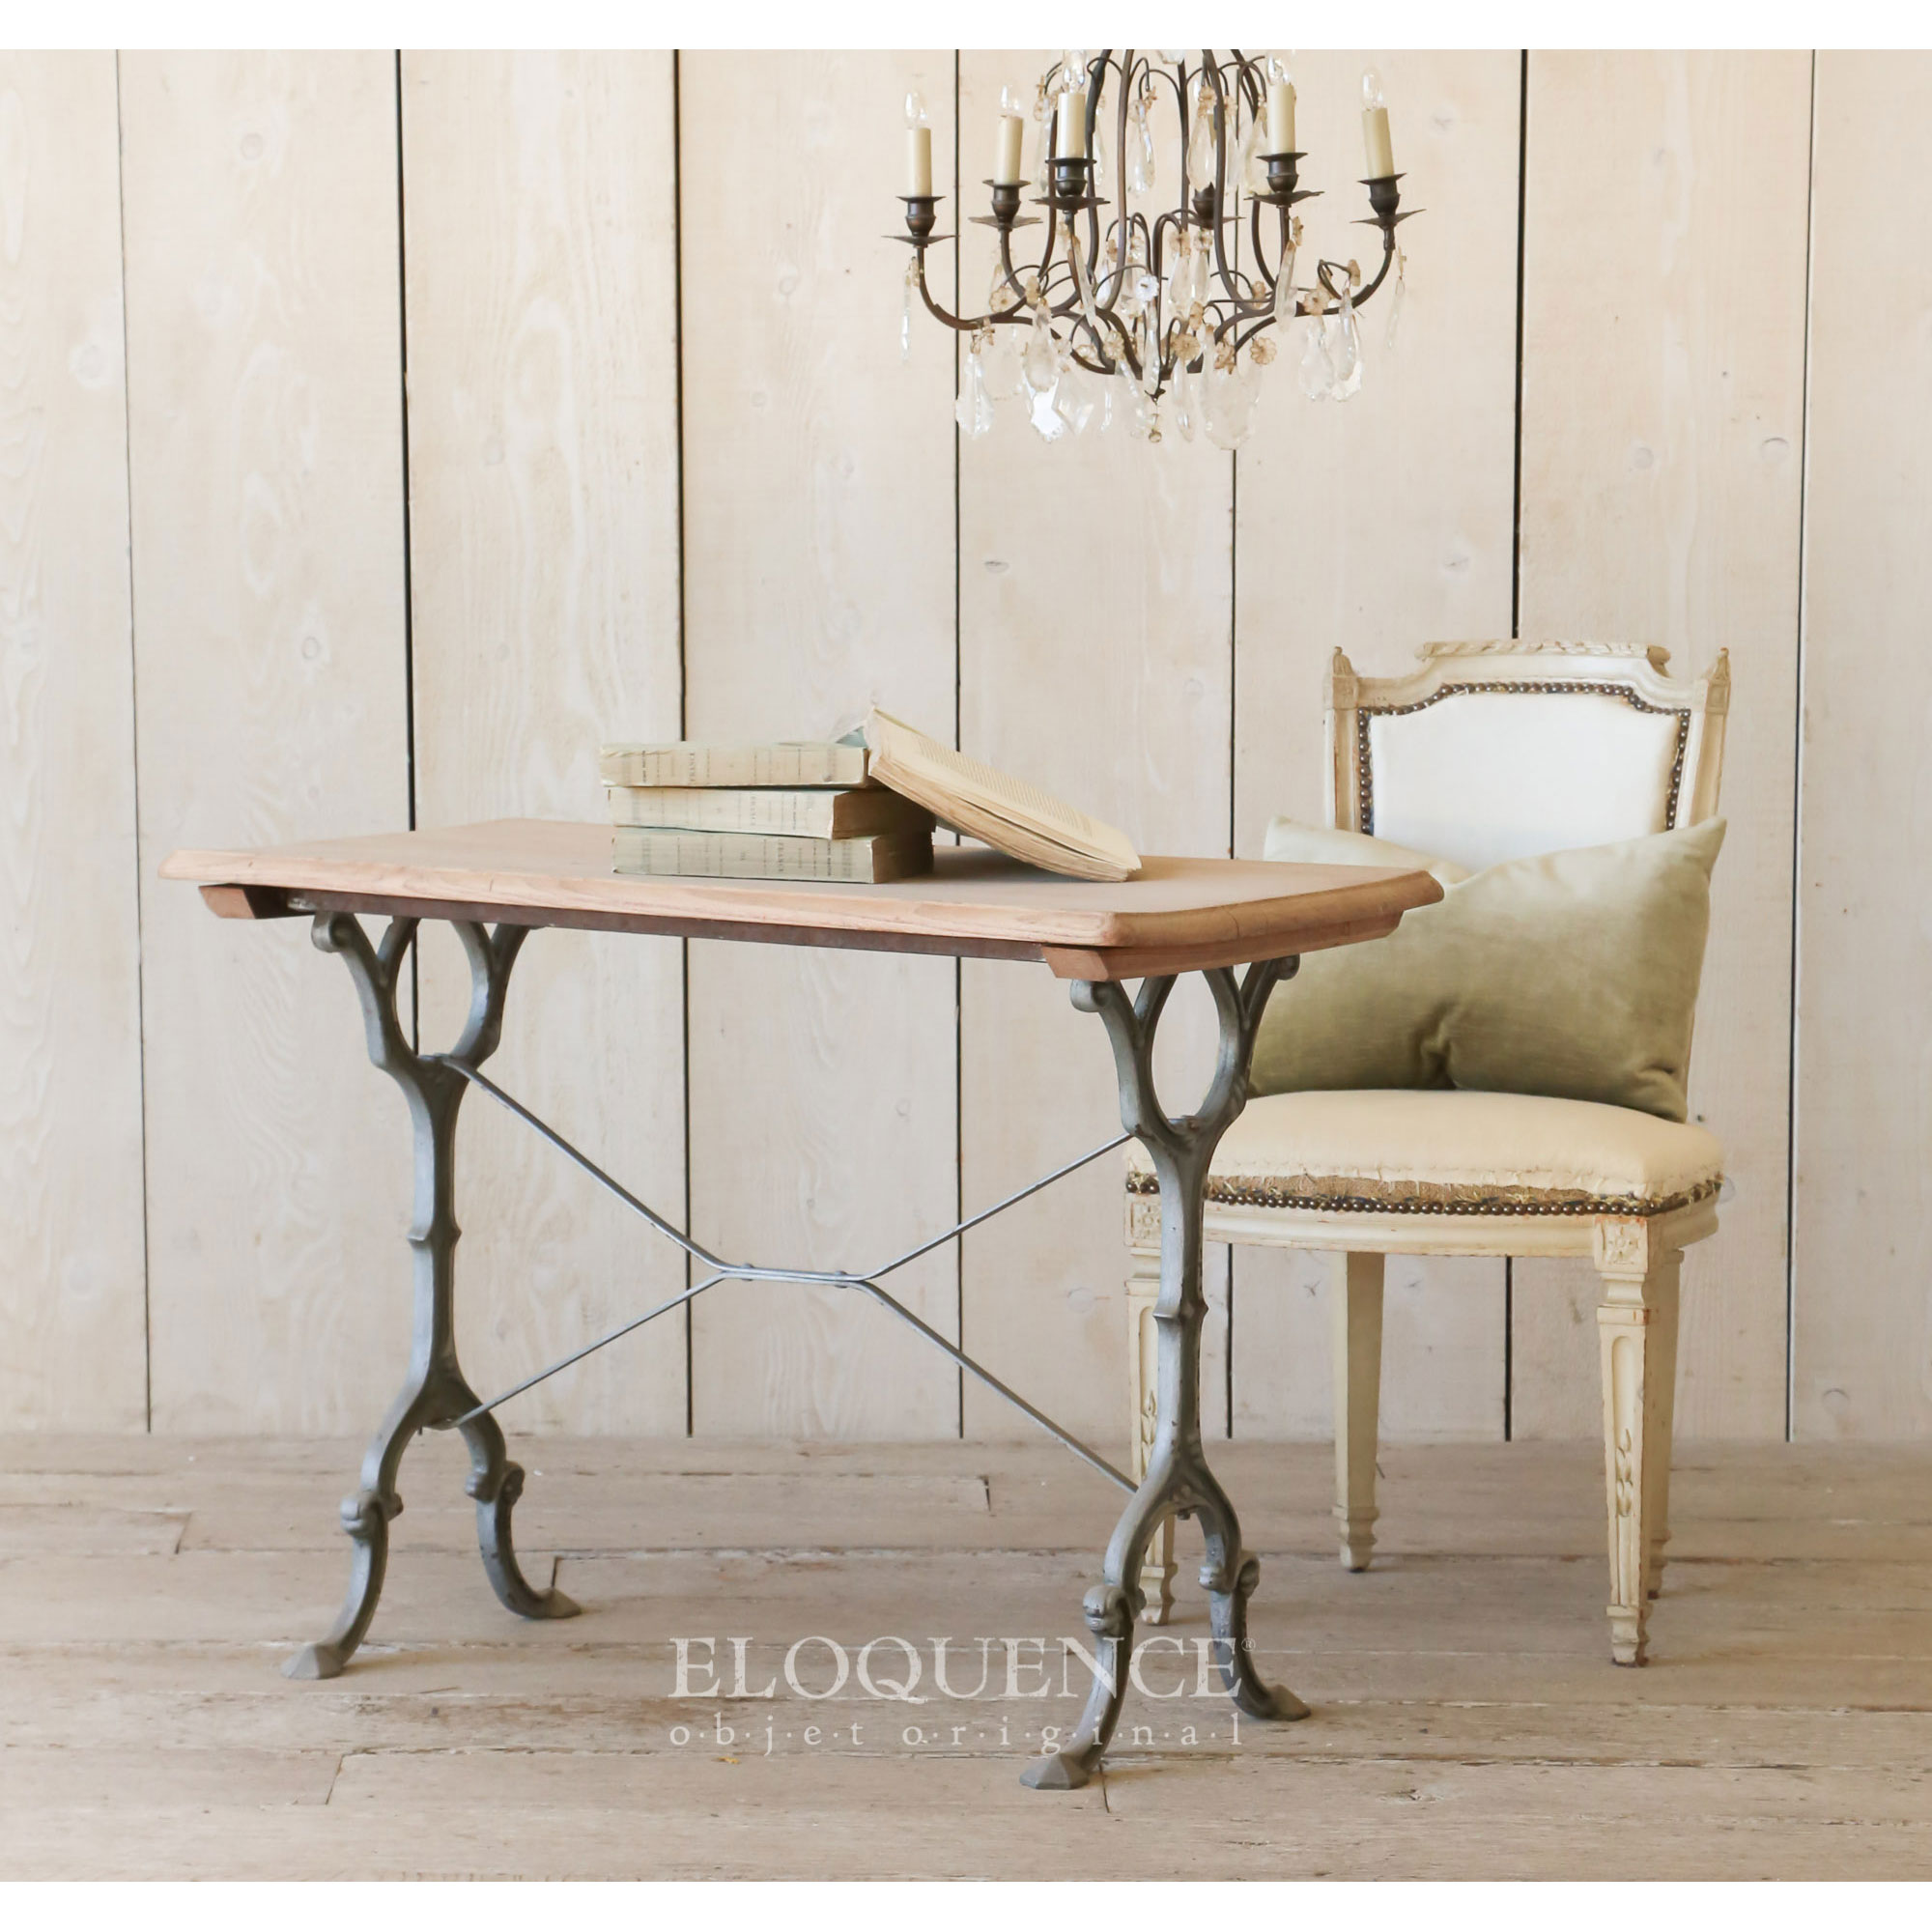 Eloquence® Vintage French Country Light Honey Wood Iron Table